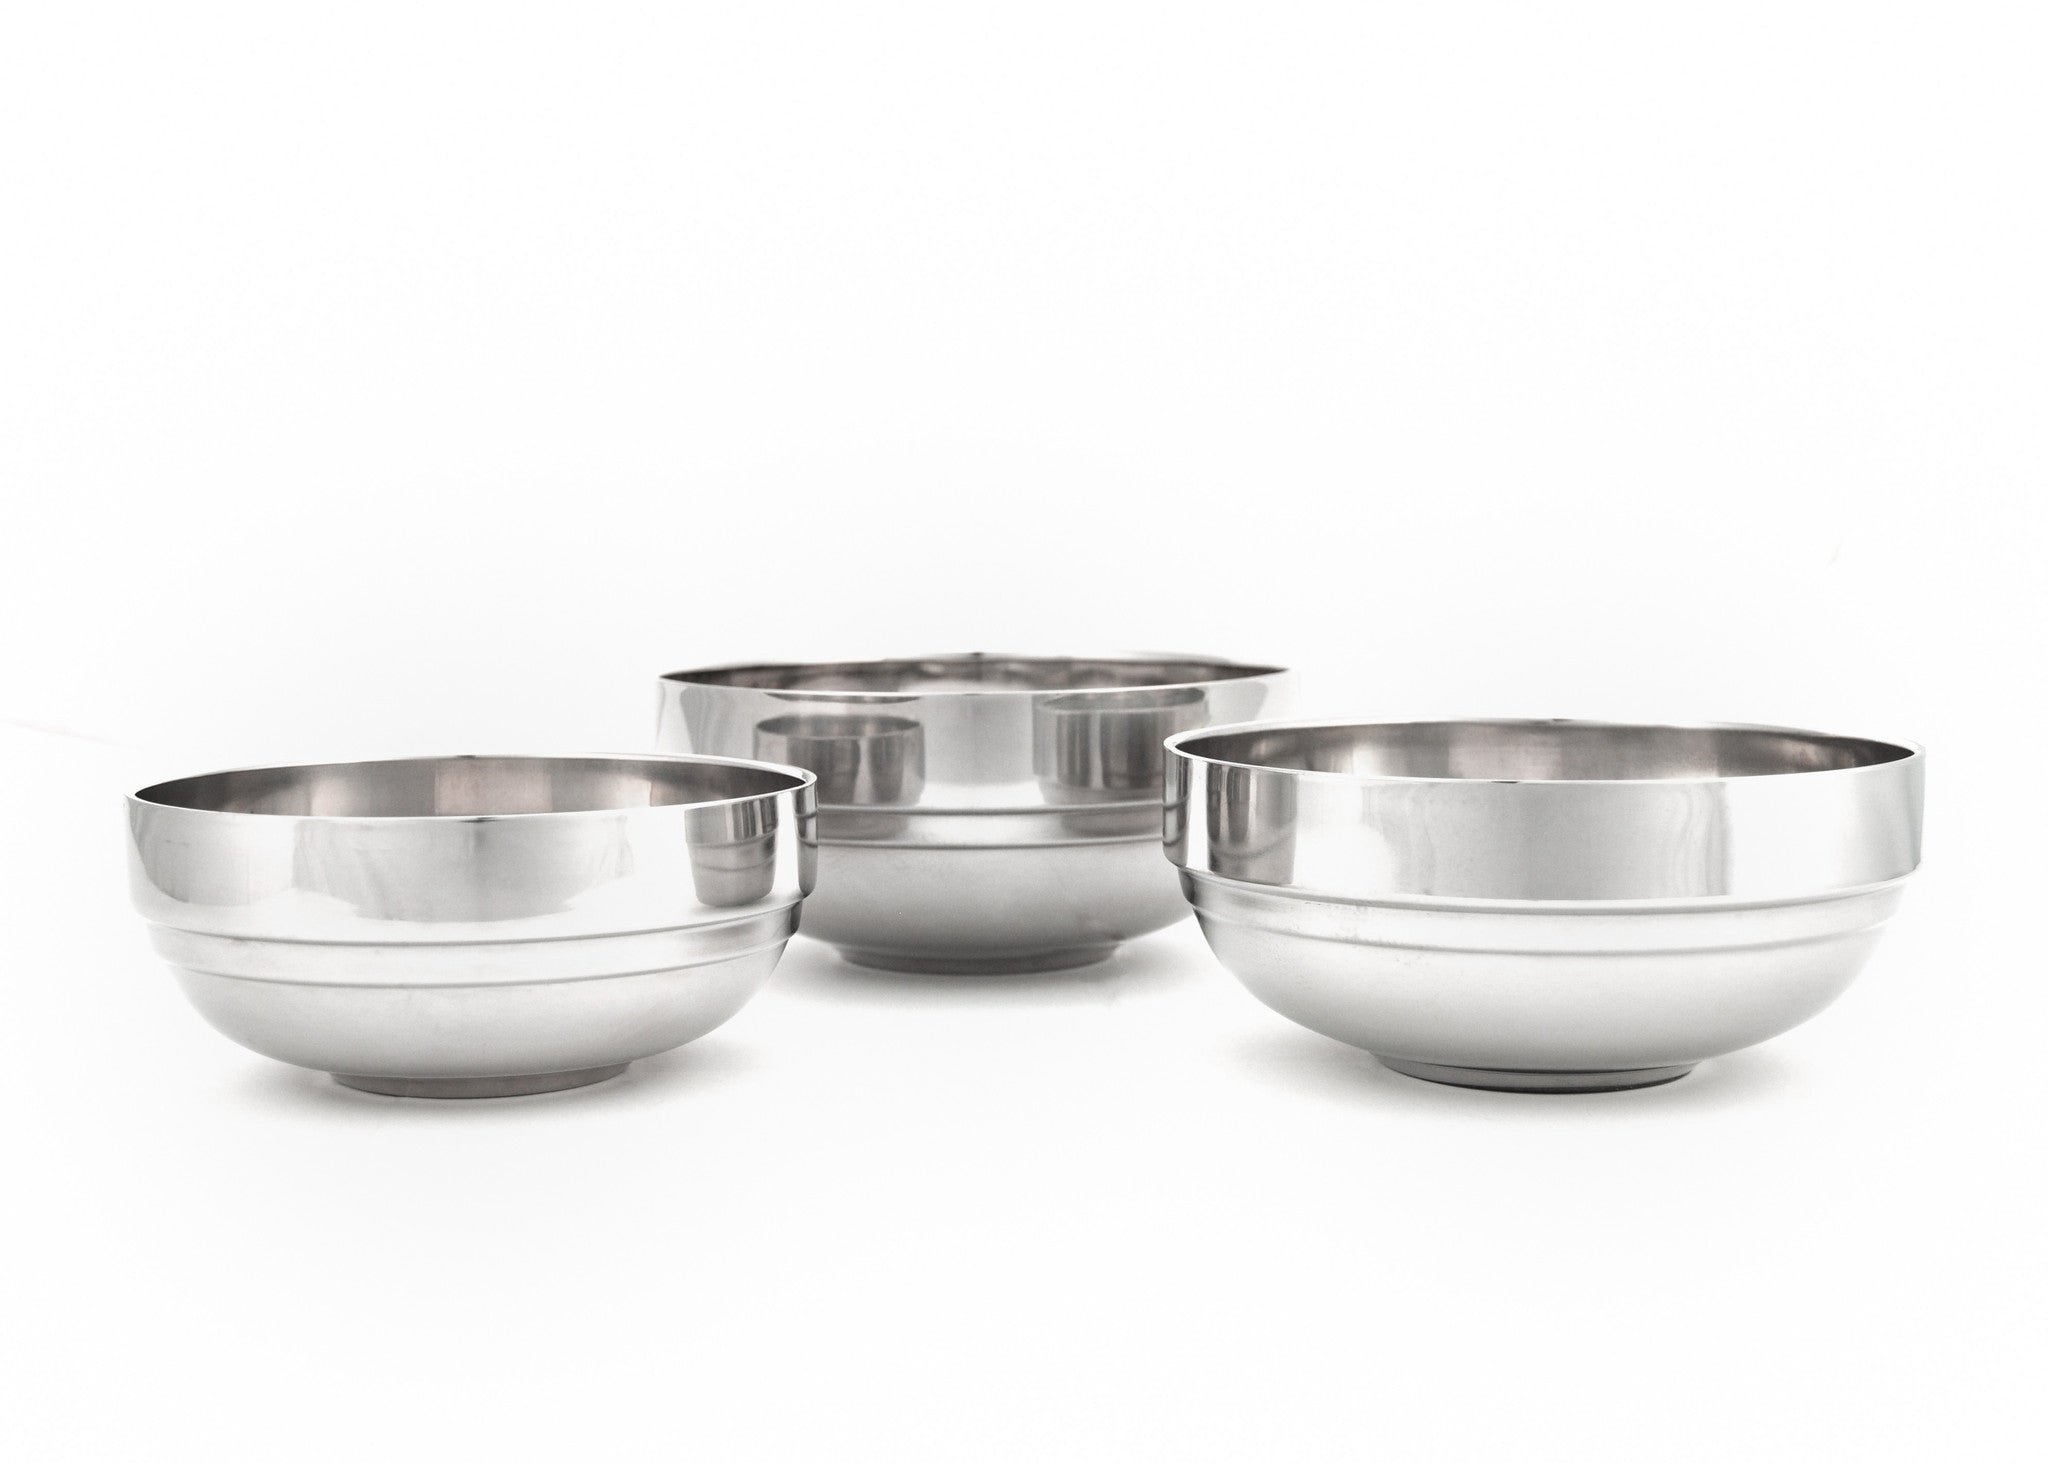 Stainless Steel Double Wall Bowl (Tangi) 탕기, Stainless Steel - eKitchenary